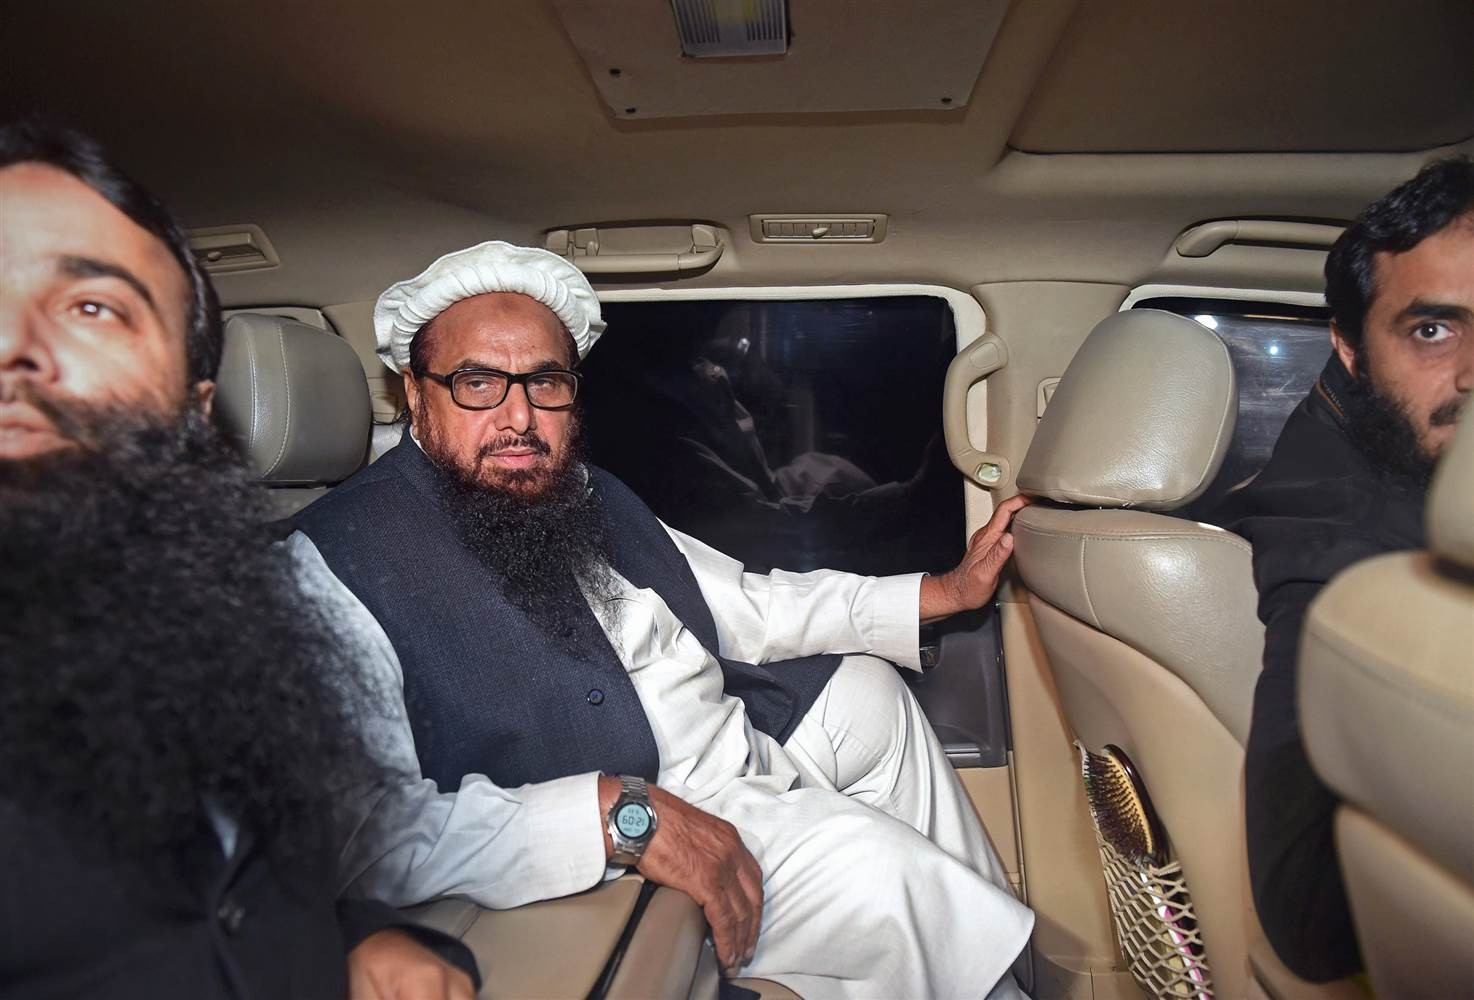 Hafiz Saeed, the Pakistani leader of Jamaat-ud-Dawa, leaves in a car after being detained by police in Lahore, early on Jan. 31, 2017. Image: AFP